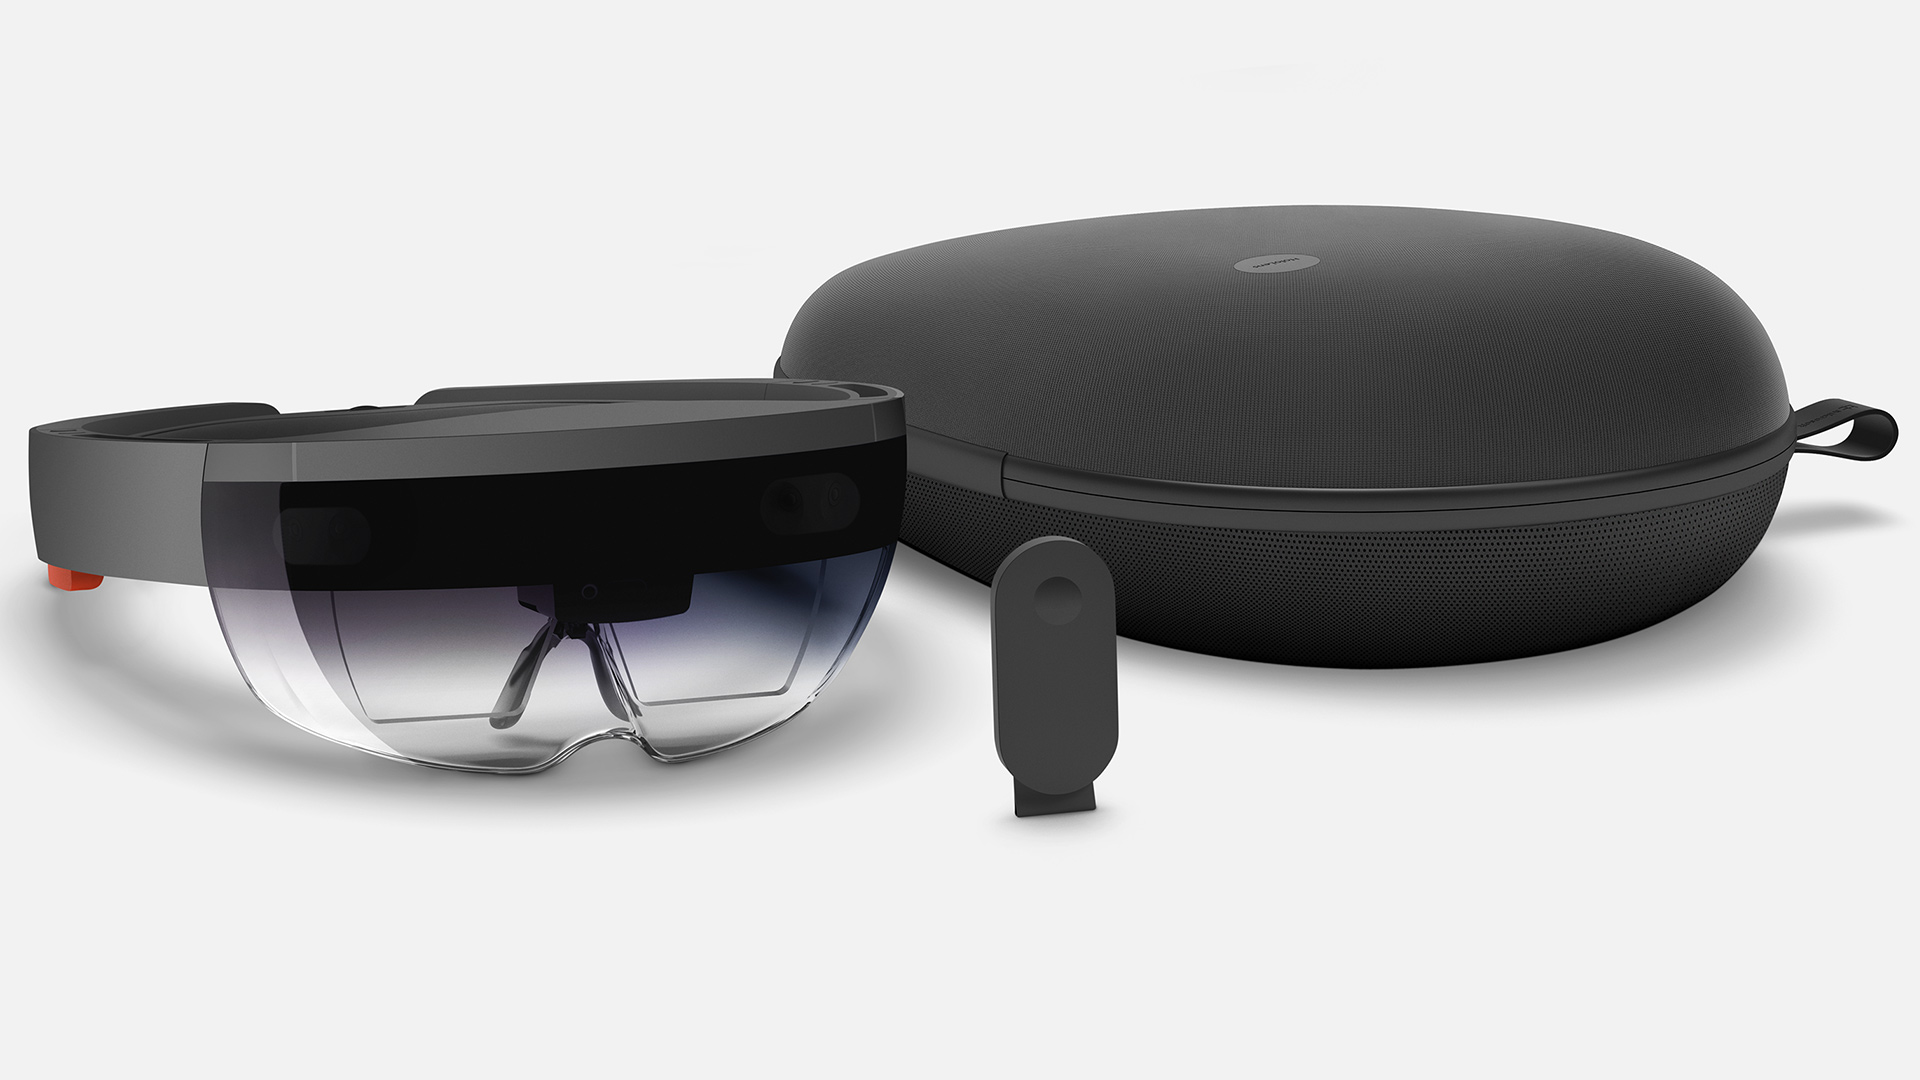 Microsoft HoloLens Development Edition Package: HoloLens headset, Clicker, and Box.